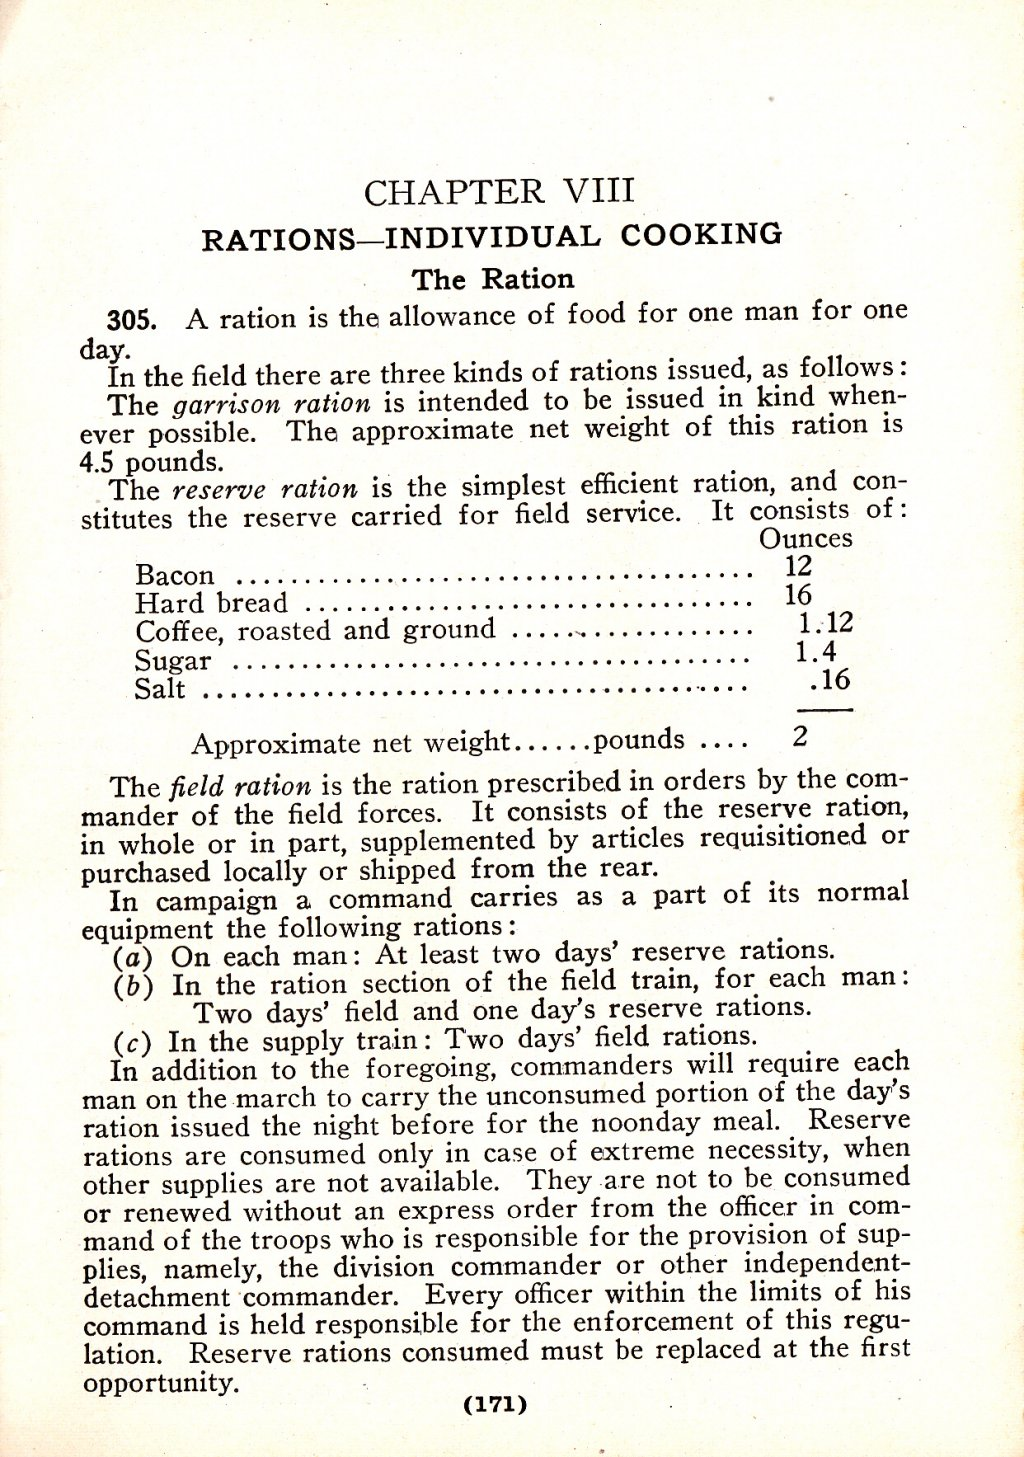 314th Infantry Regiment - Infantry Soldiers Handbook - Waldron - Page 171